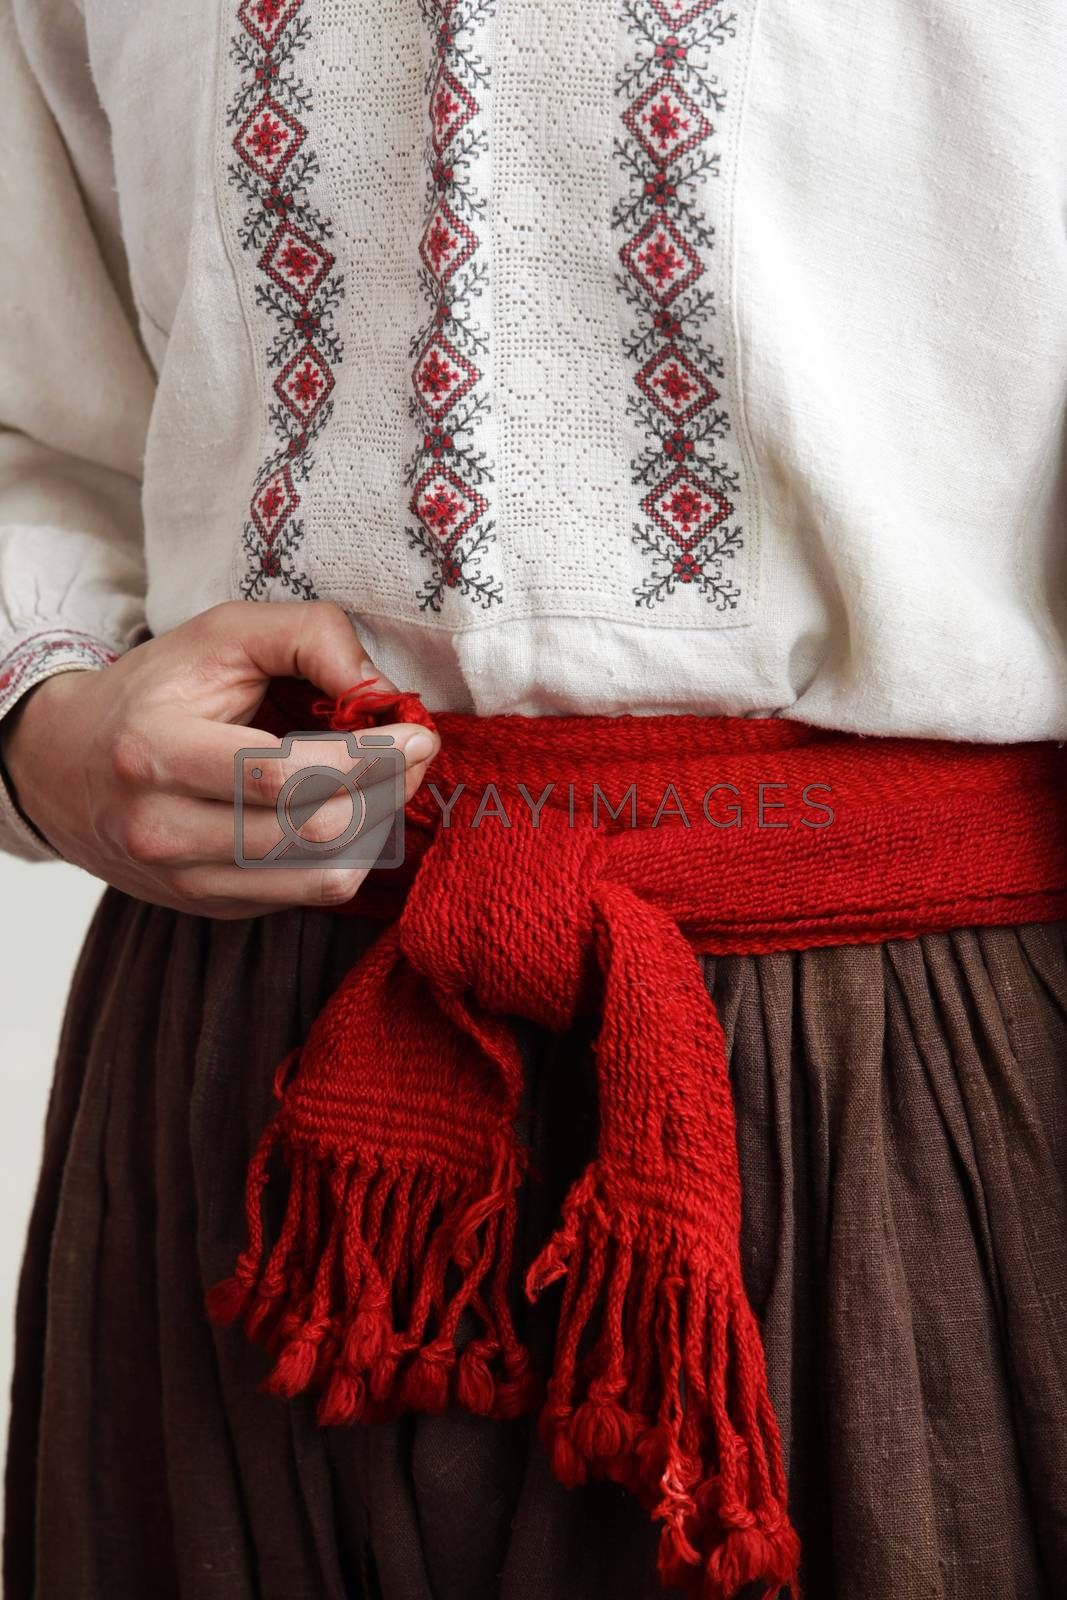 Folk costume. Cossack in an embroidered shirt with a red belt